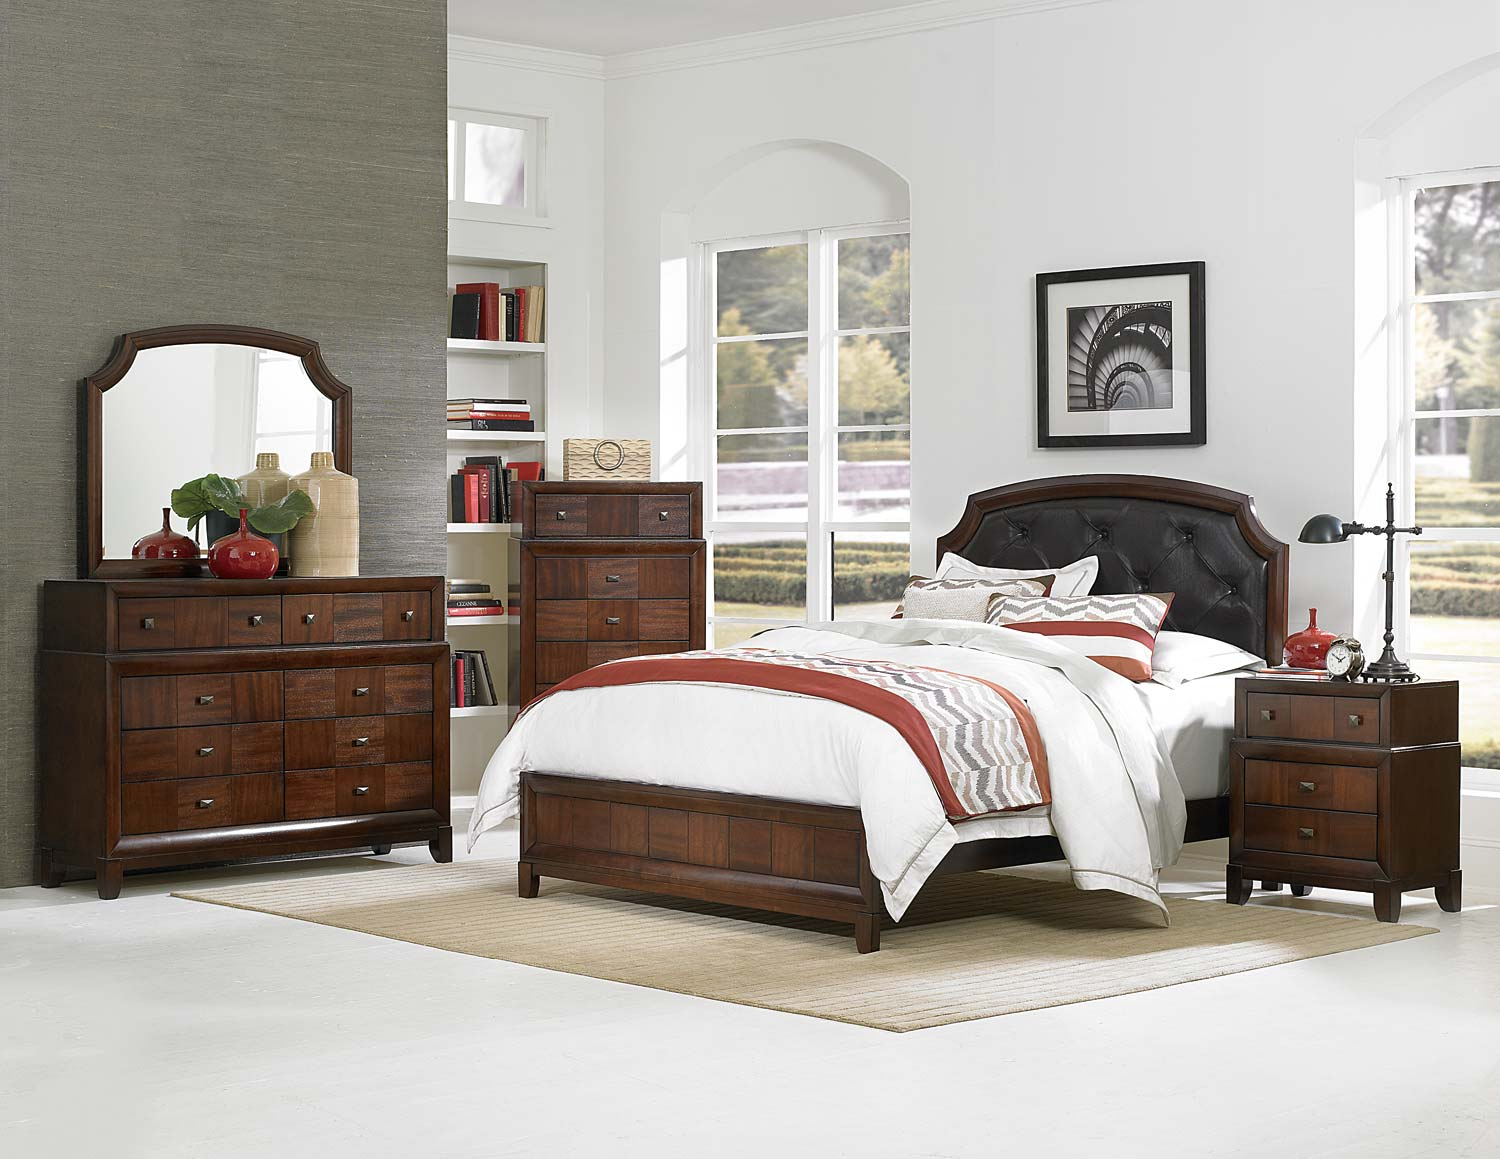 Homelegance Carrie Ann Upholstered Bedroom Set - Parquet Cherry